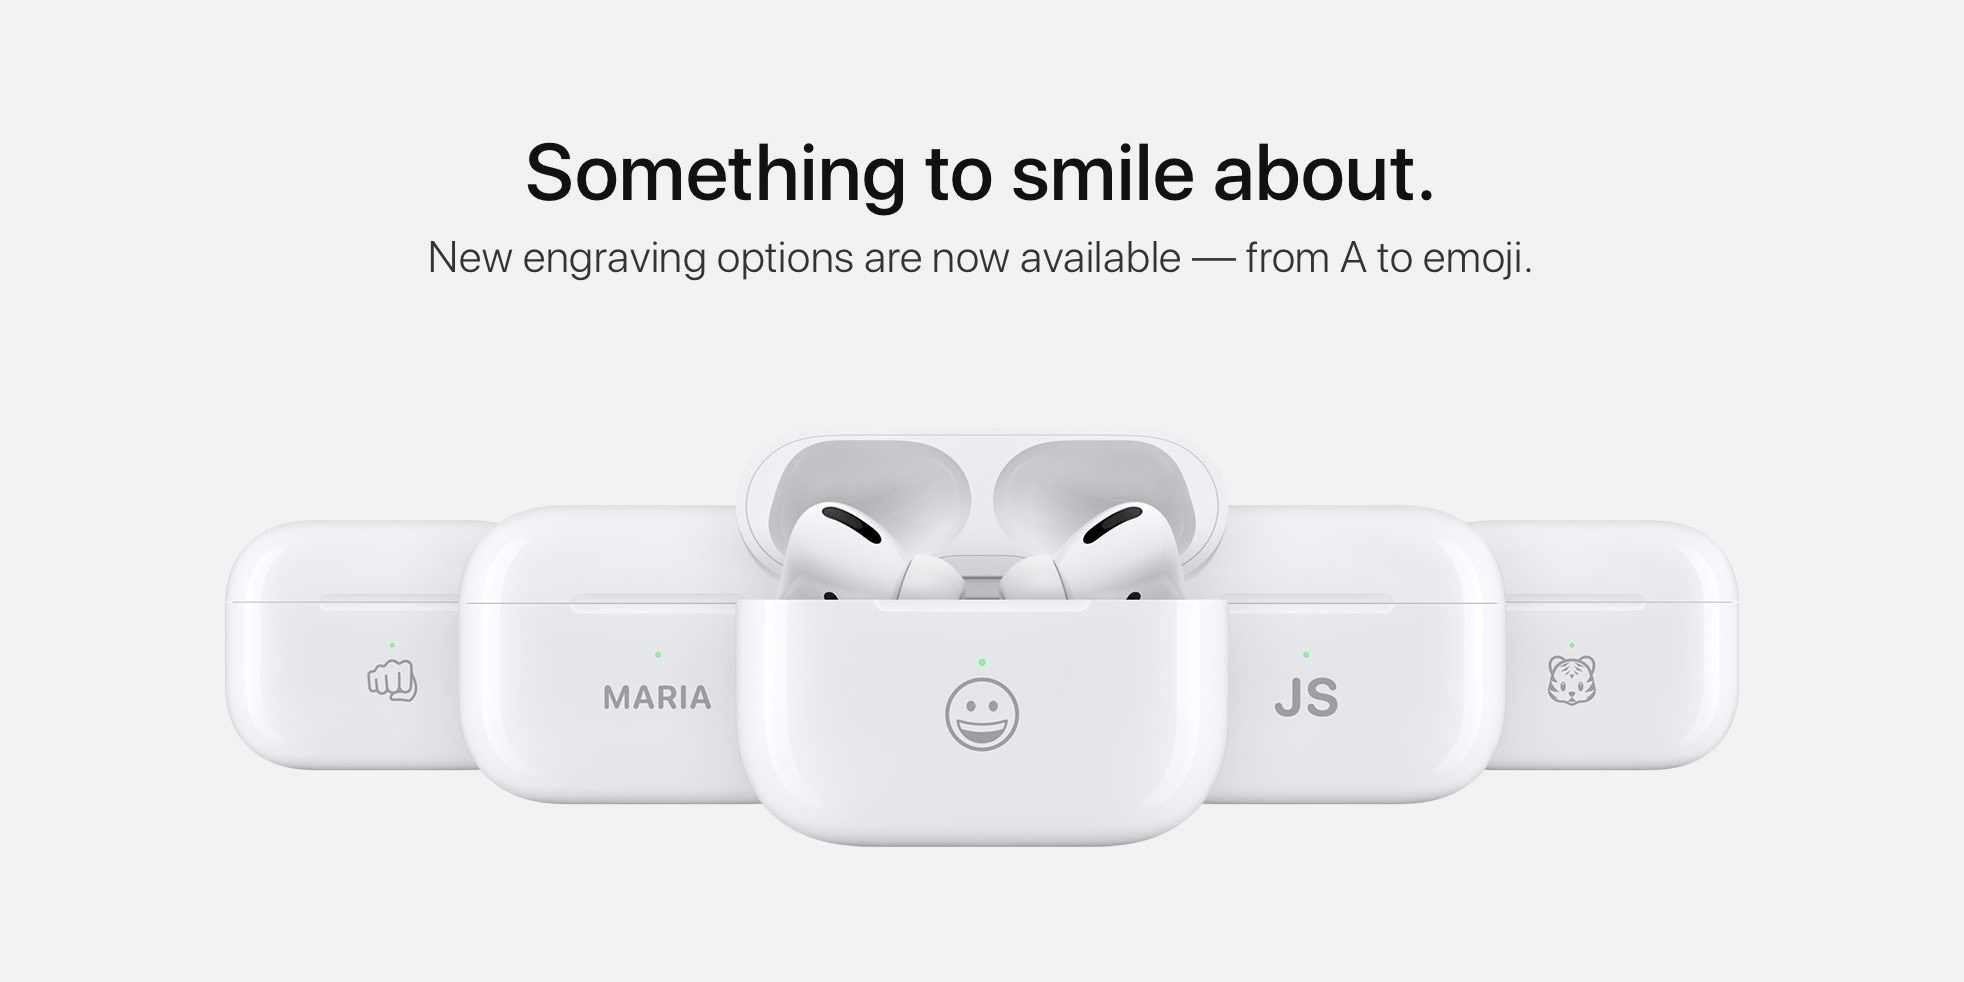 Apple Now Offers AirPods Charging Case Emoji Engraving Options